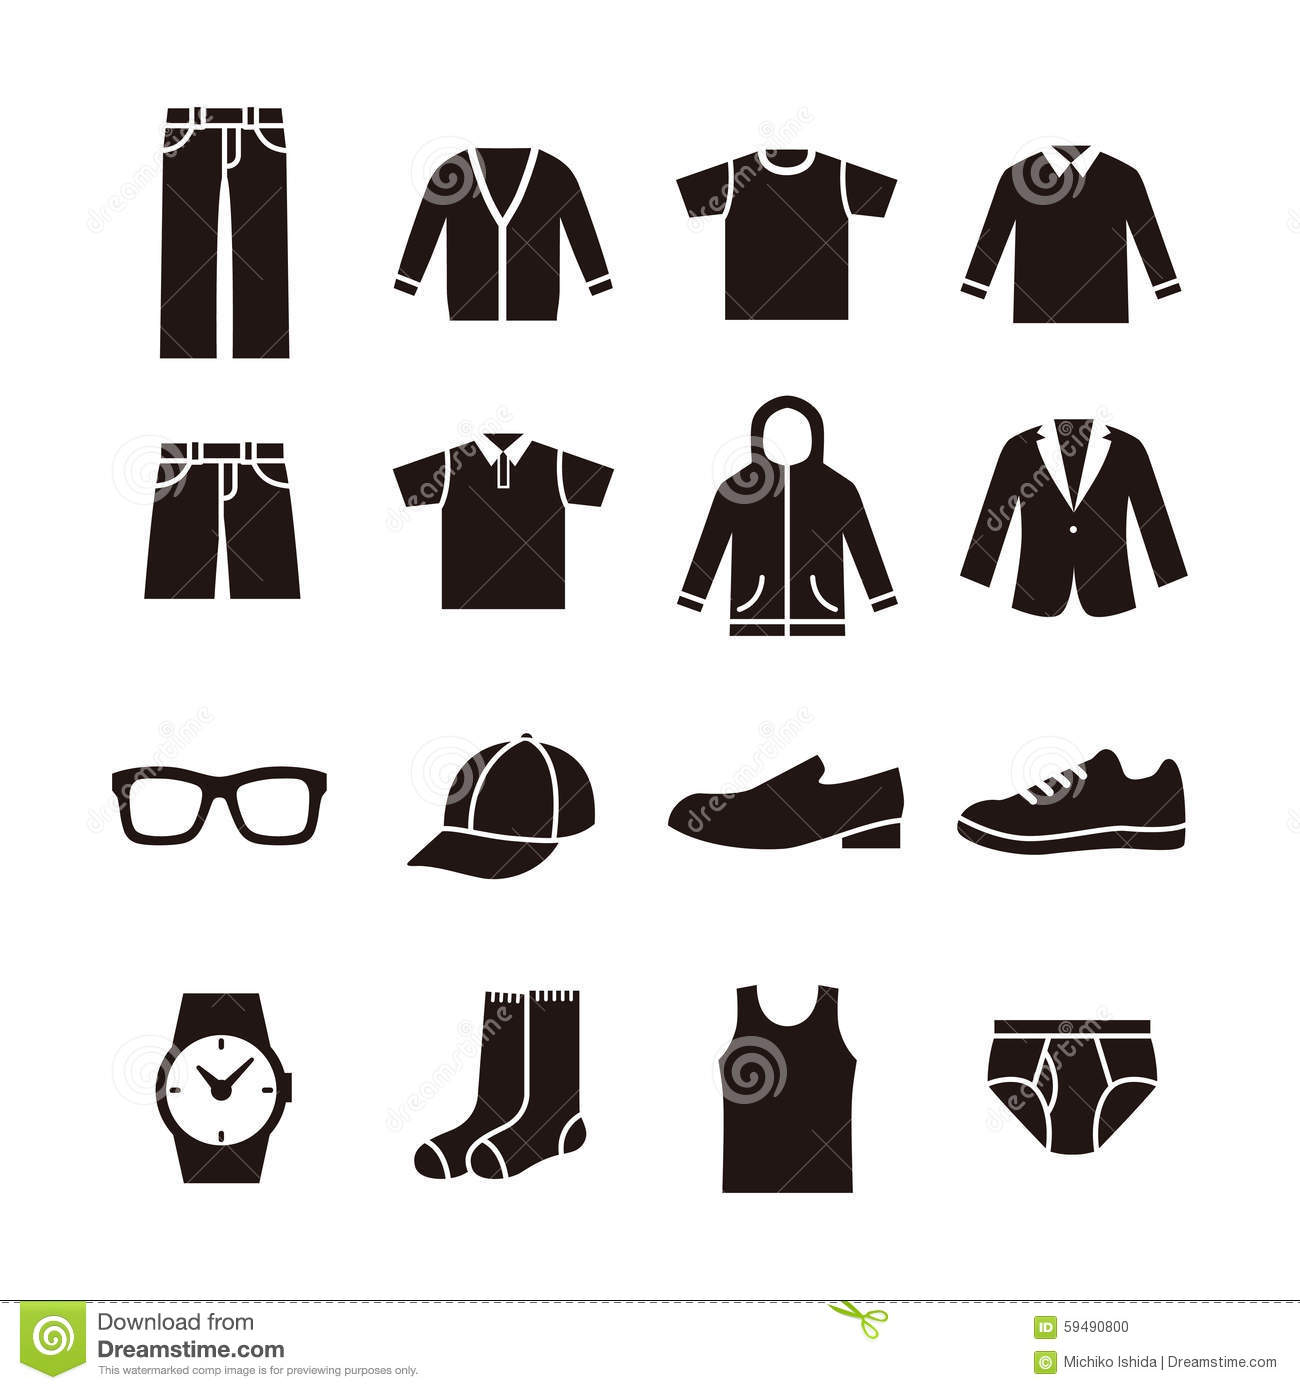 Skirt besides Stock Illustration Girl S Clothes Coloring Page Useful As Book Kids Image50448565 in addition Fairy 20clipart 20princess 20shoe as well Stock Illustration Mens Fashion Icon Black White Illustration Image59490800 as well Thing. on dress shoes clip art